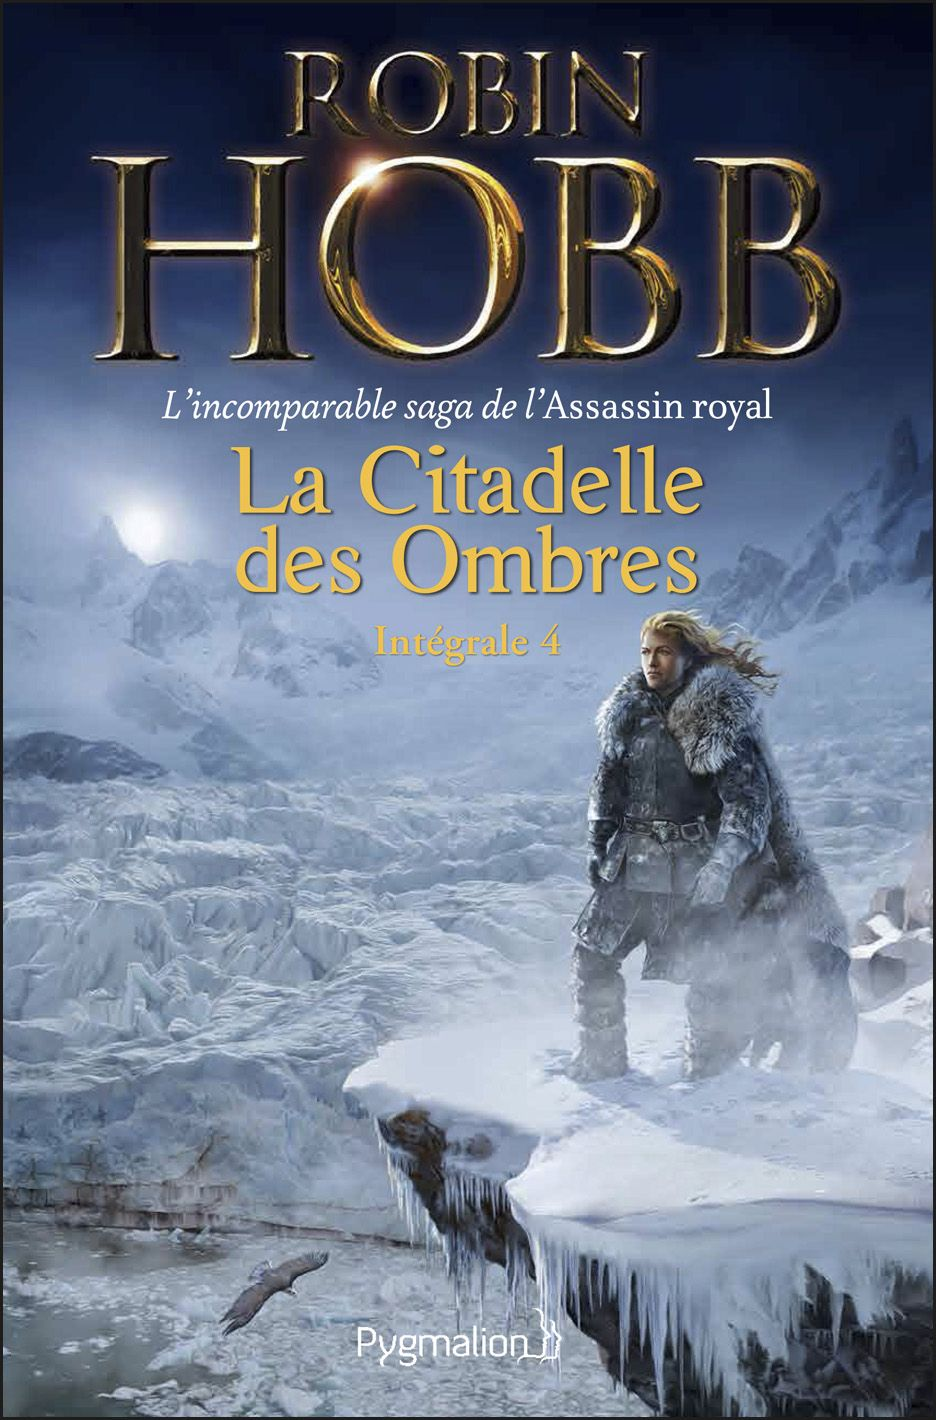 La Citadelle des Ombres - L'Intégrale 4 (Tomes 10 à 13) - L'incomparable saga de L'Assassin royal